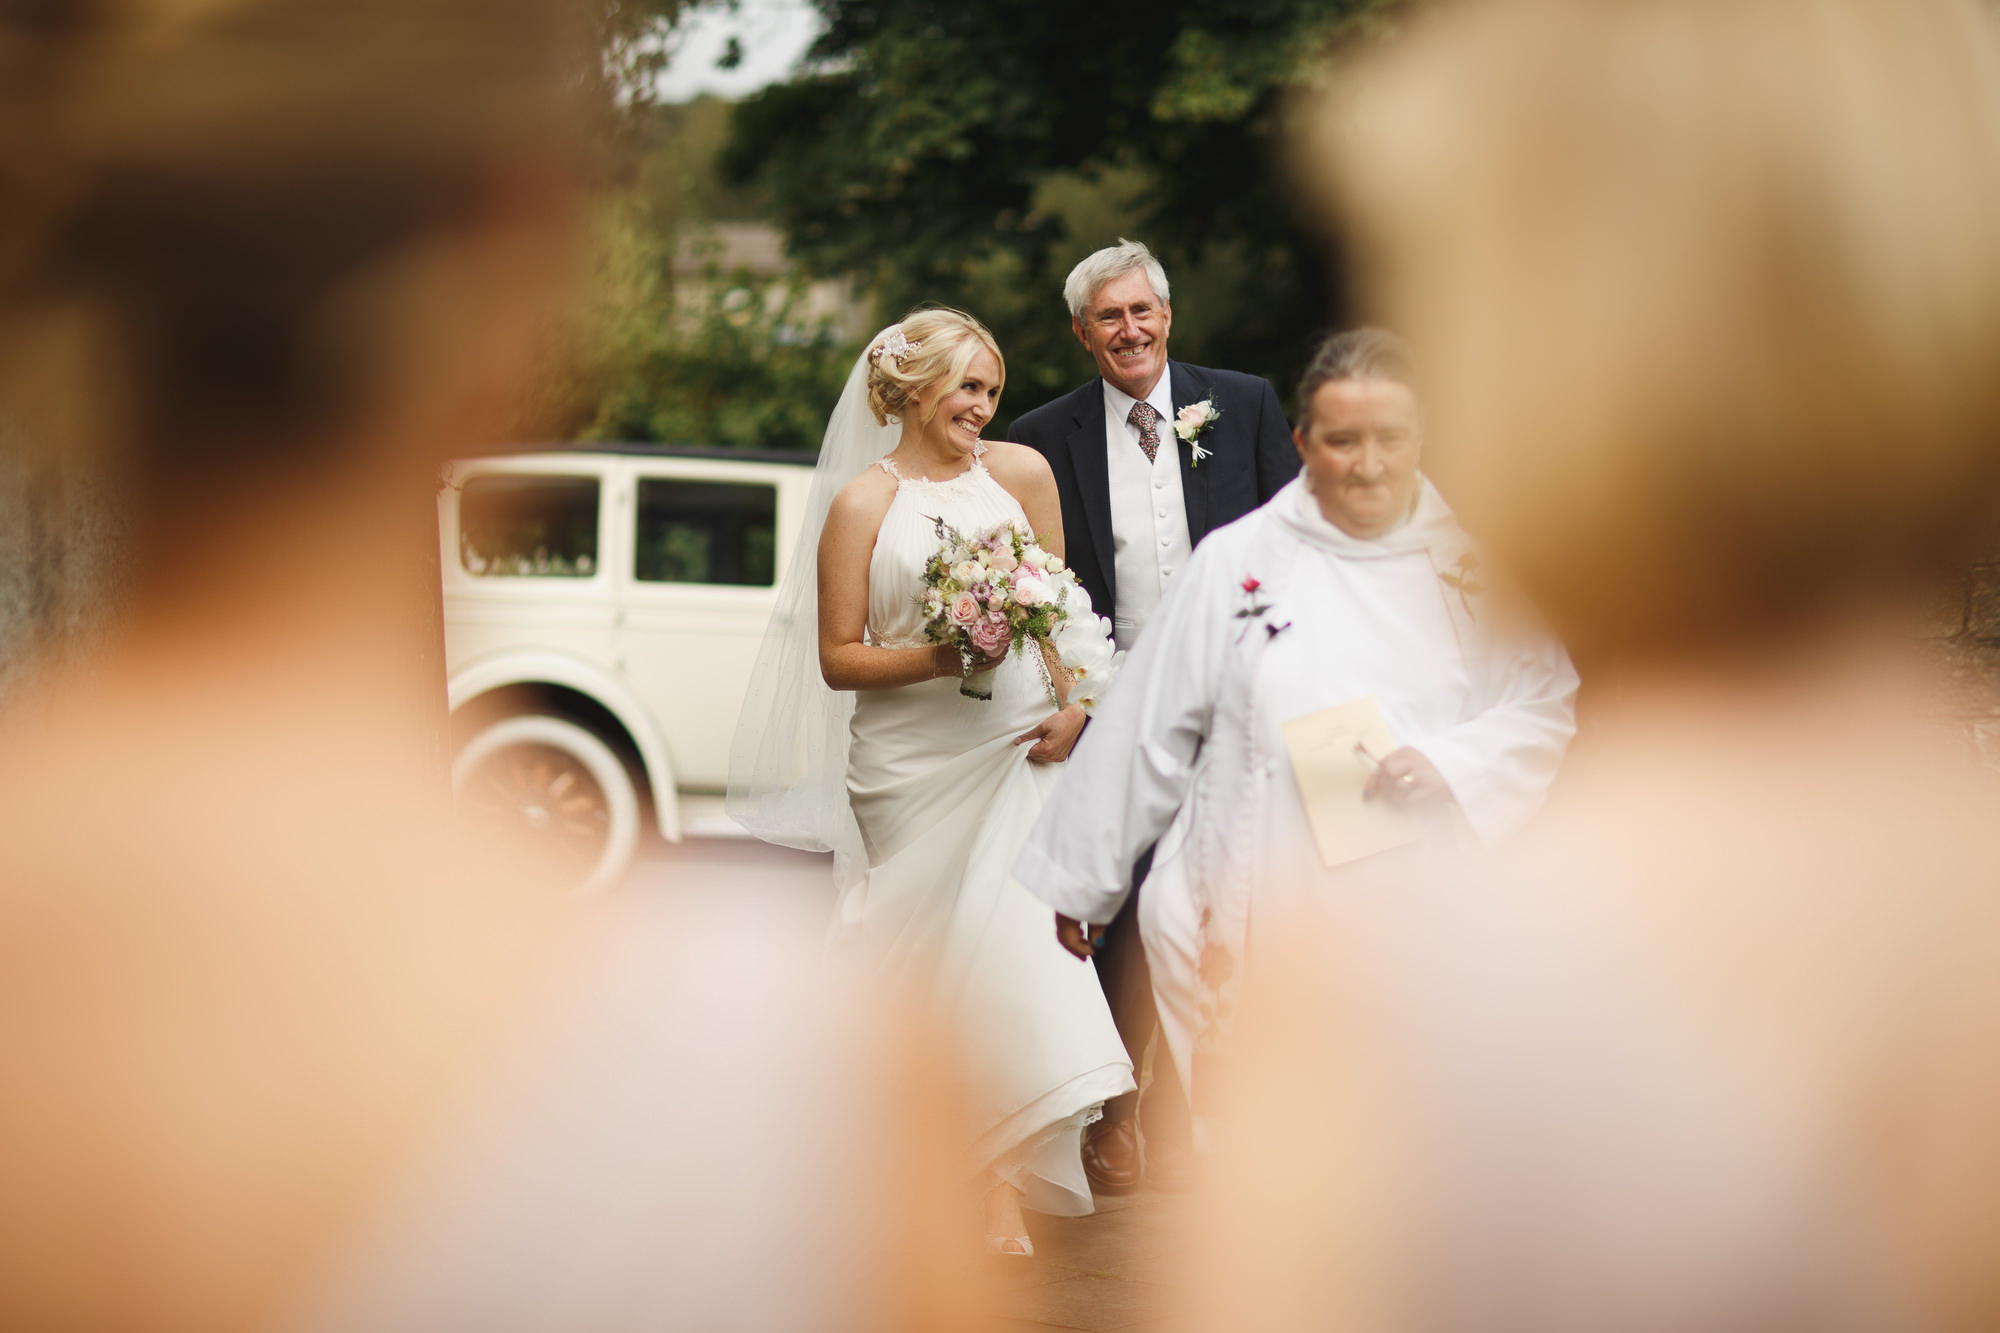 wedding-photography-mitton-hall-24